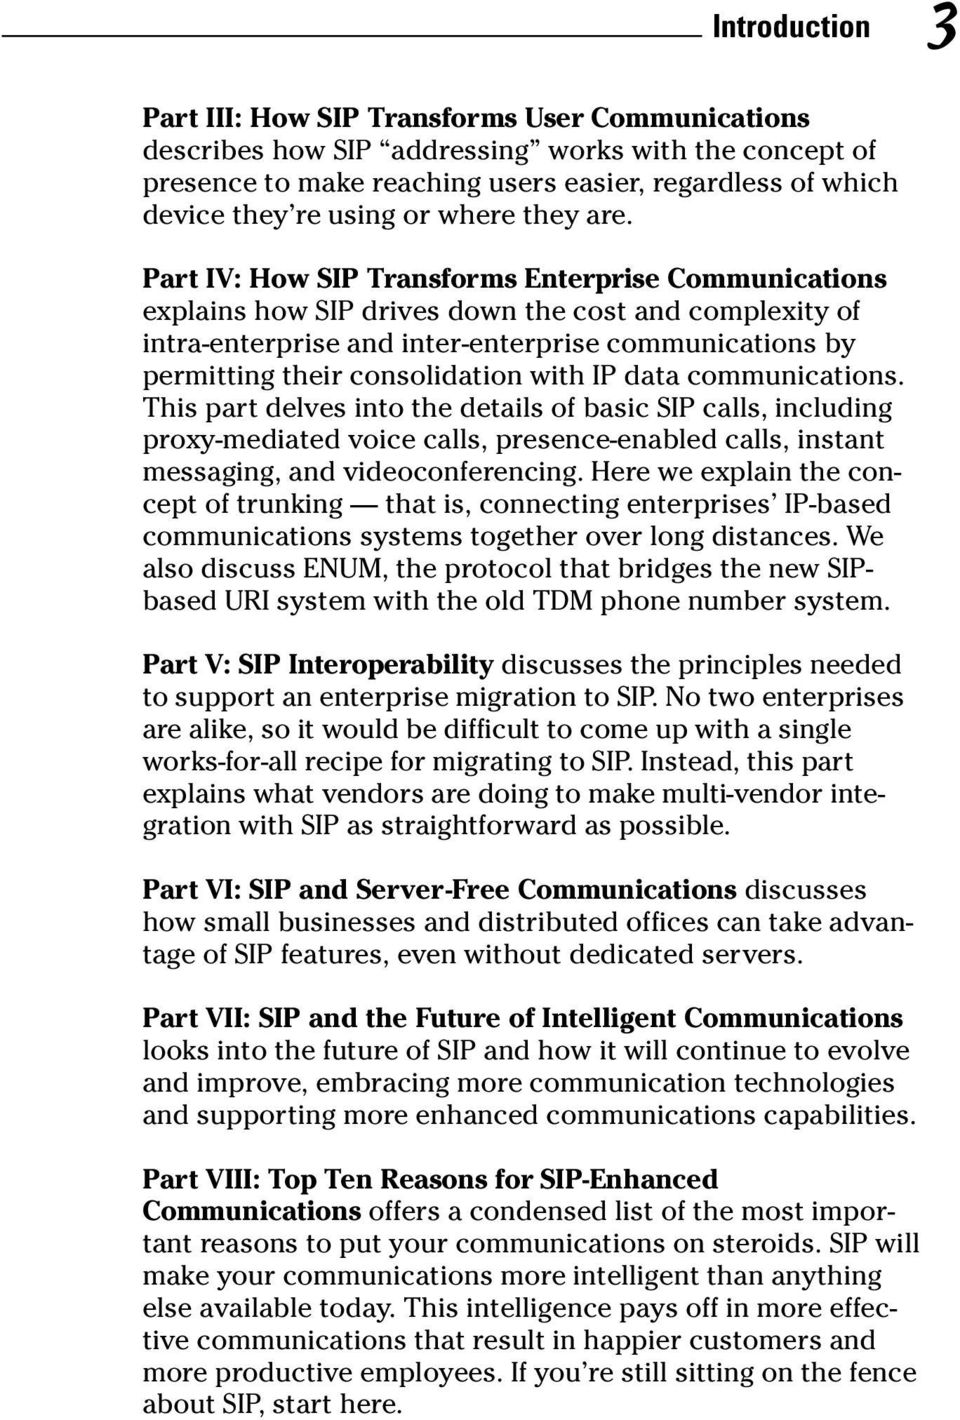 Part IV: How SIP Transforms Enterprise Communications explains how SIP drives down the cost and complexity of intra-enterprise and inter-enterprise communications by permitting their consolidation